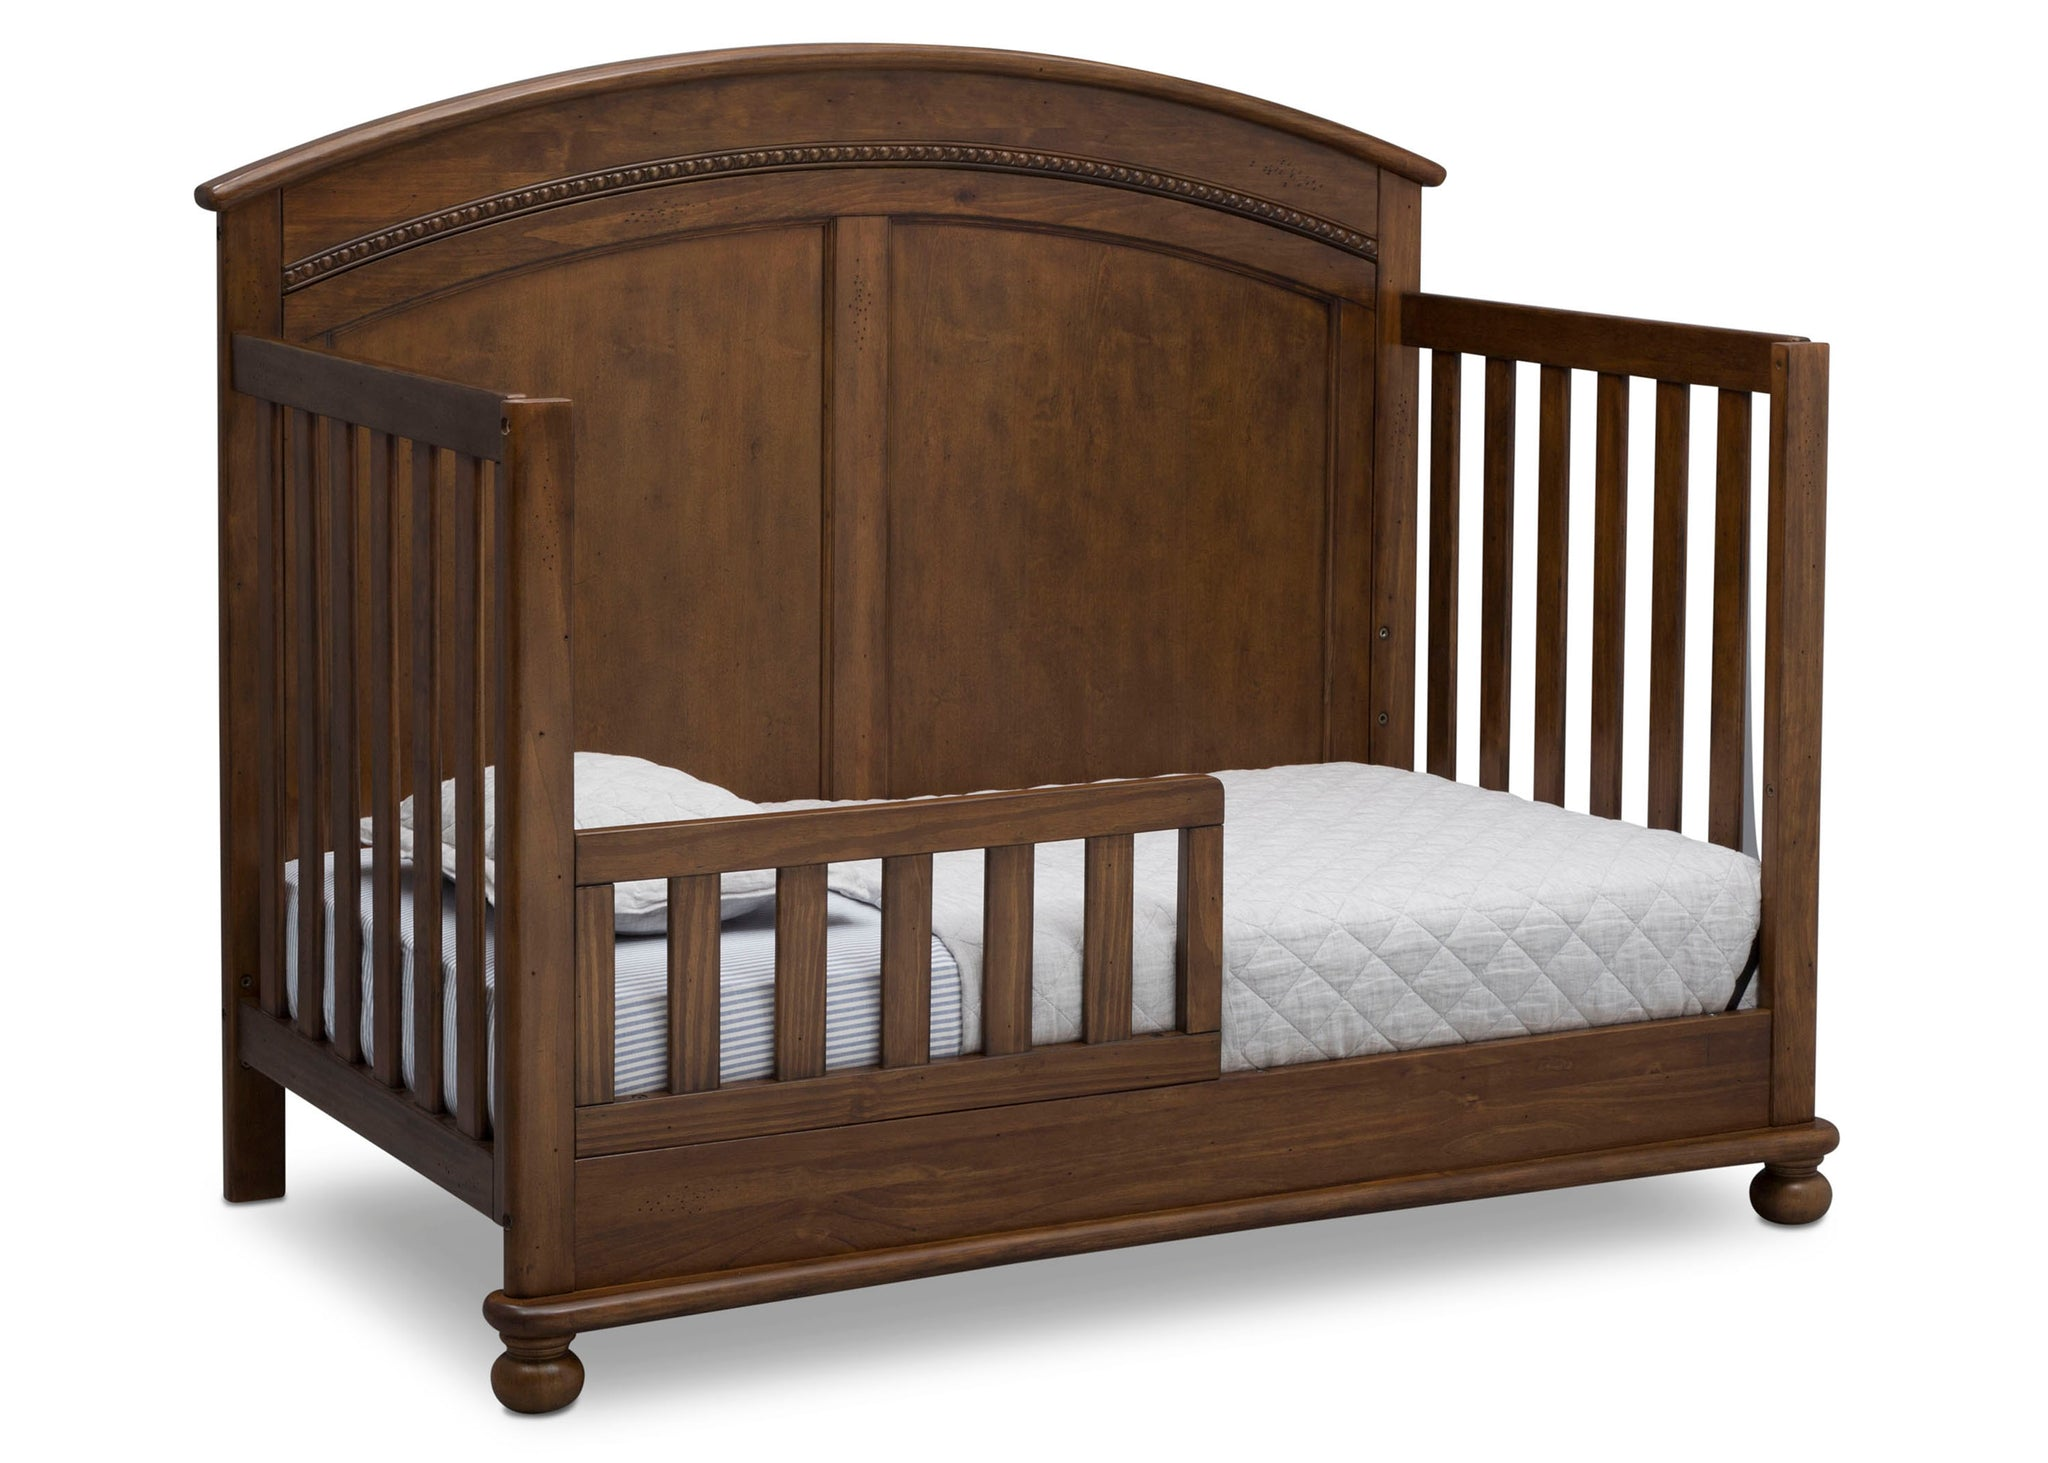 Simmons Kids Antique Chestnut (2100) Ainsworth 4-in-1 Convertible Crib (W337250), Toddler Bed Conversion, c4c